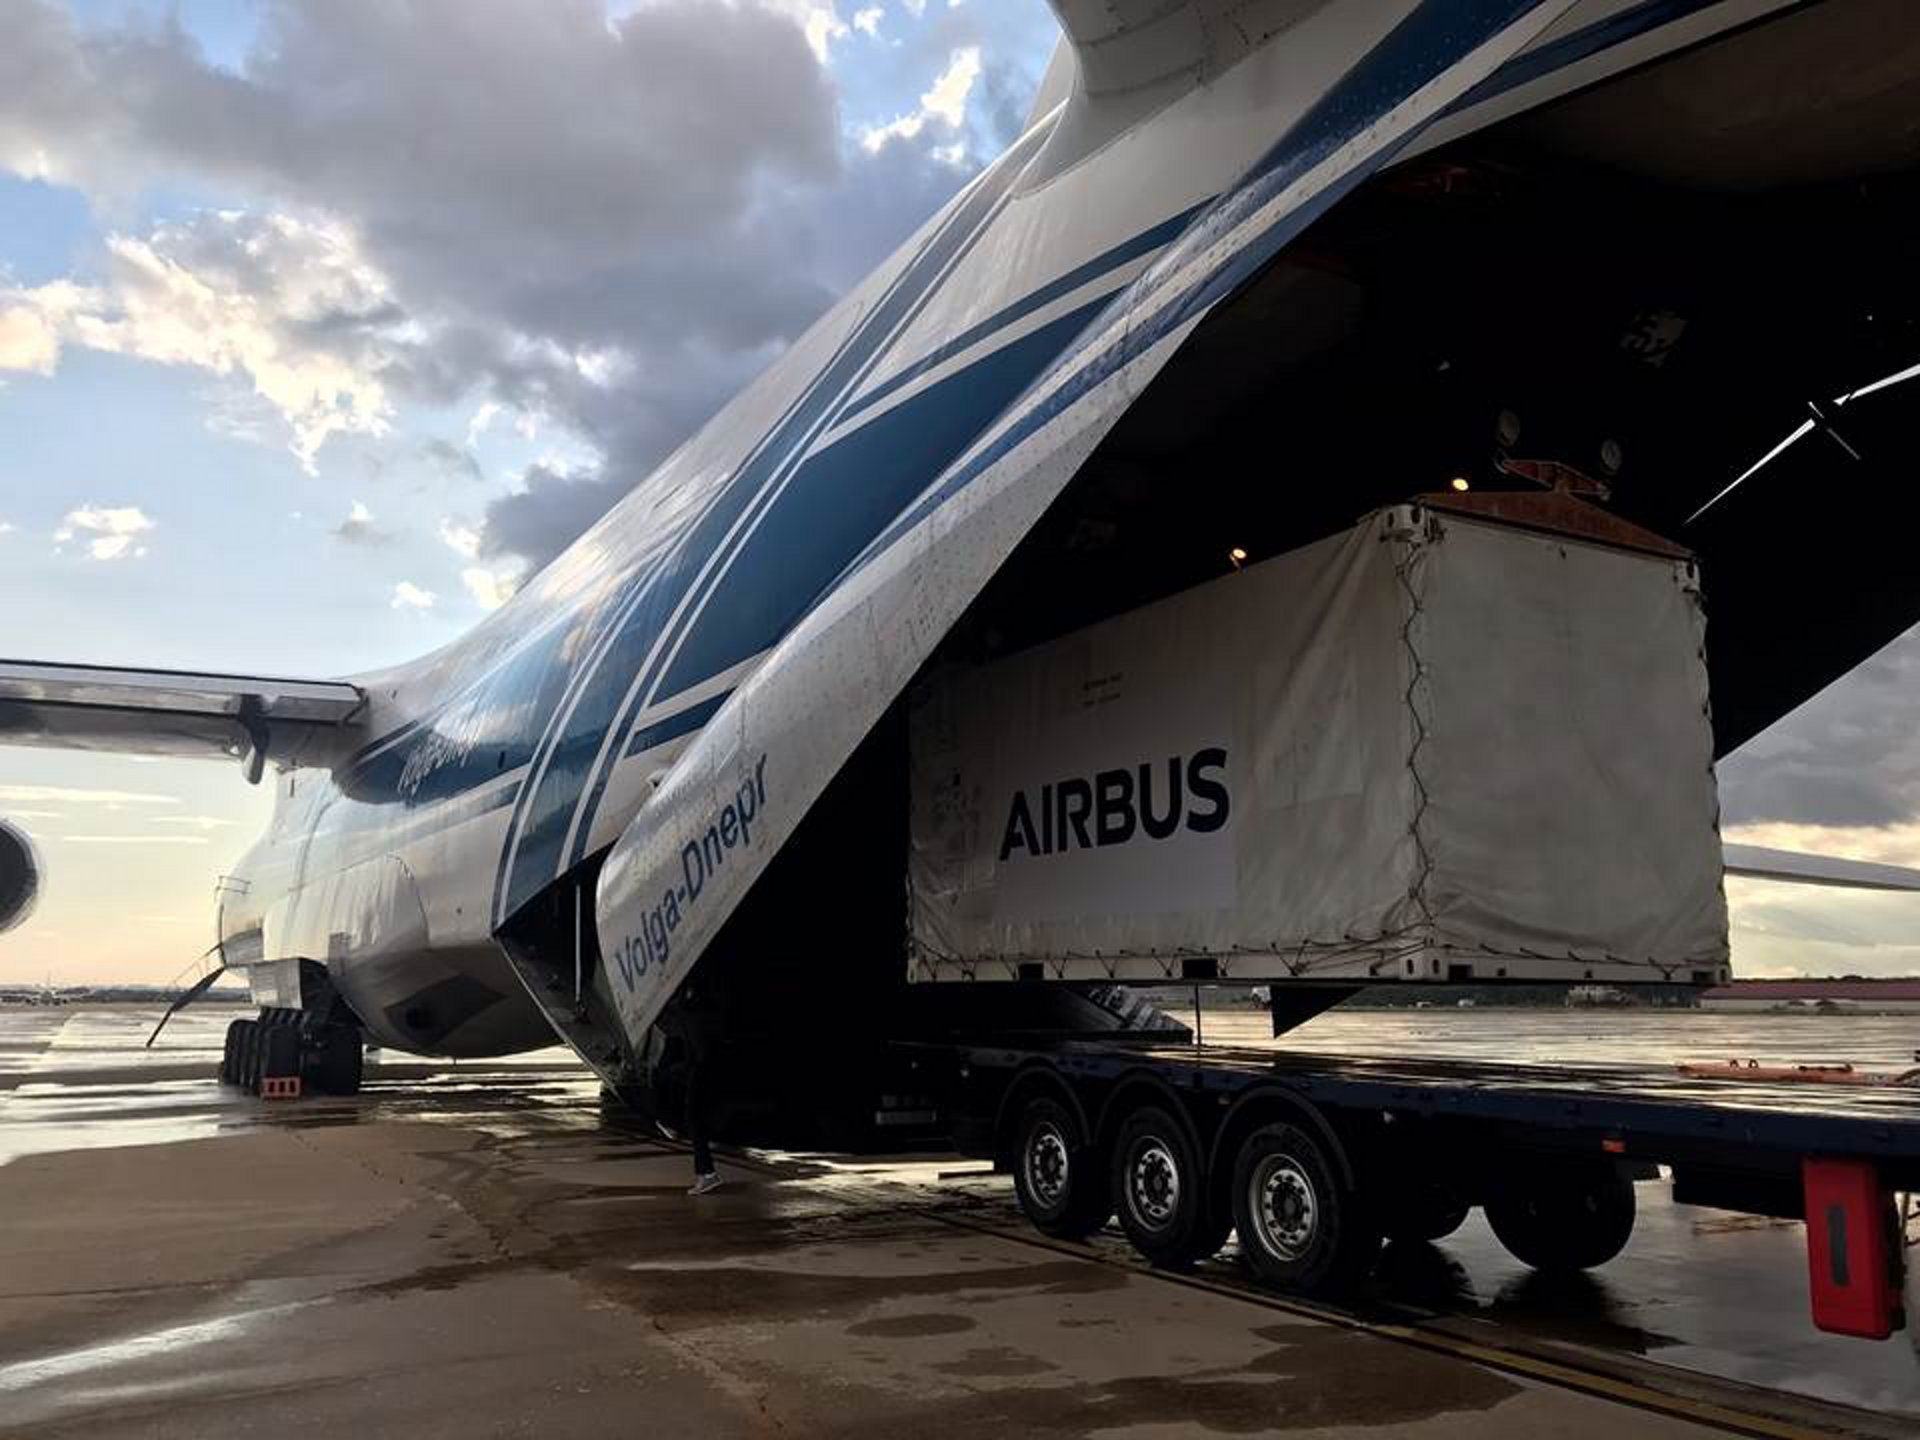 Last night, the Spanish satellite SEOSAT-Ingenio, built by Airbus, was loaded at the Torrejón de Ardóz air base, near Madrid, on board an Antonov 124 cargo plane to fly to the Kourou launch site.